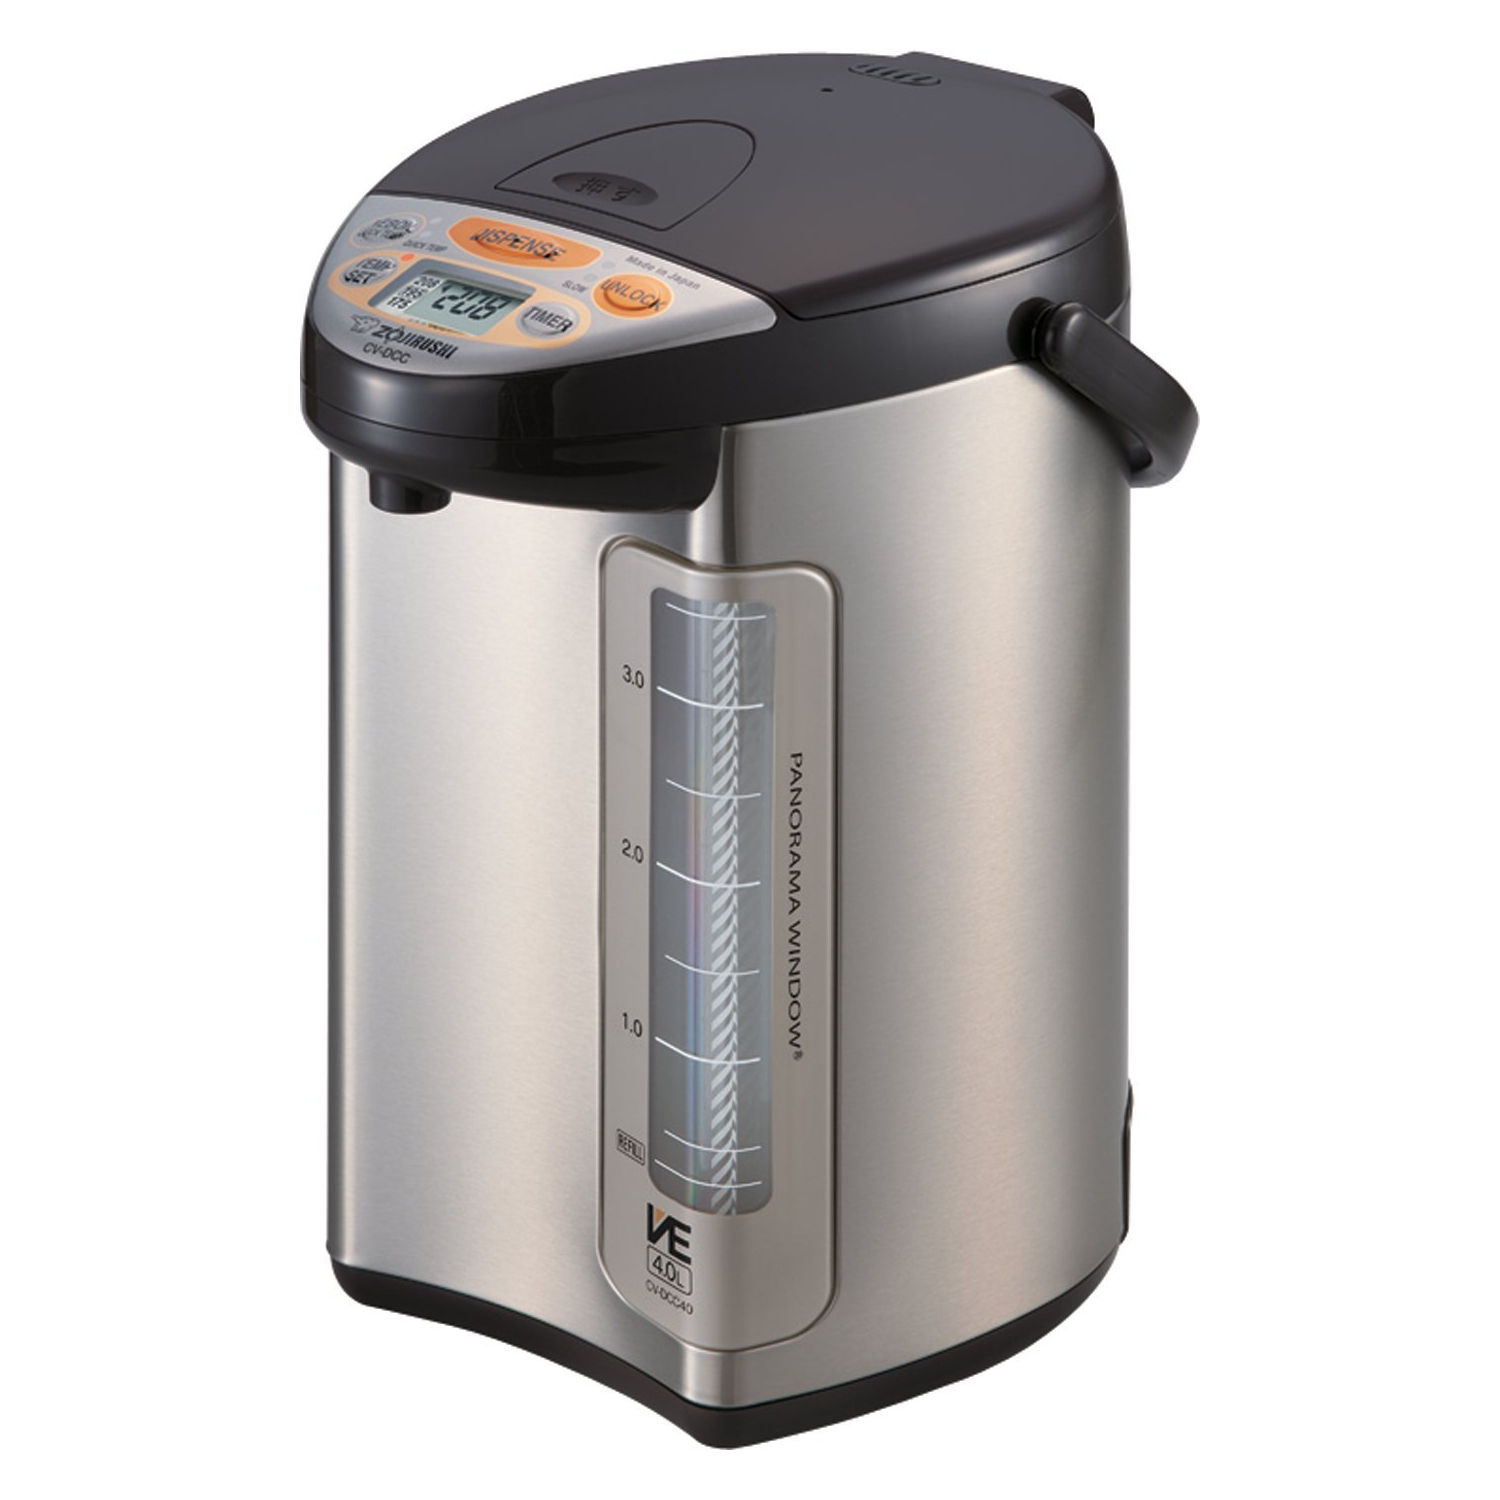 Zojirushi VE Hybrid Stainless Steel and Dark Brown 4 Liter Water Boiler and Warmer